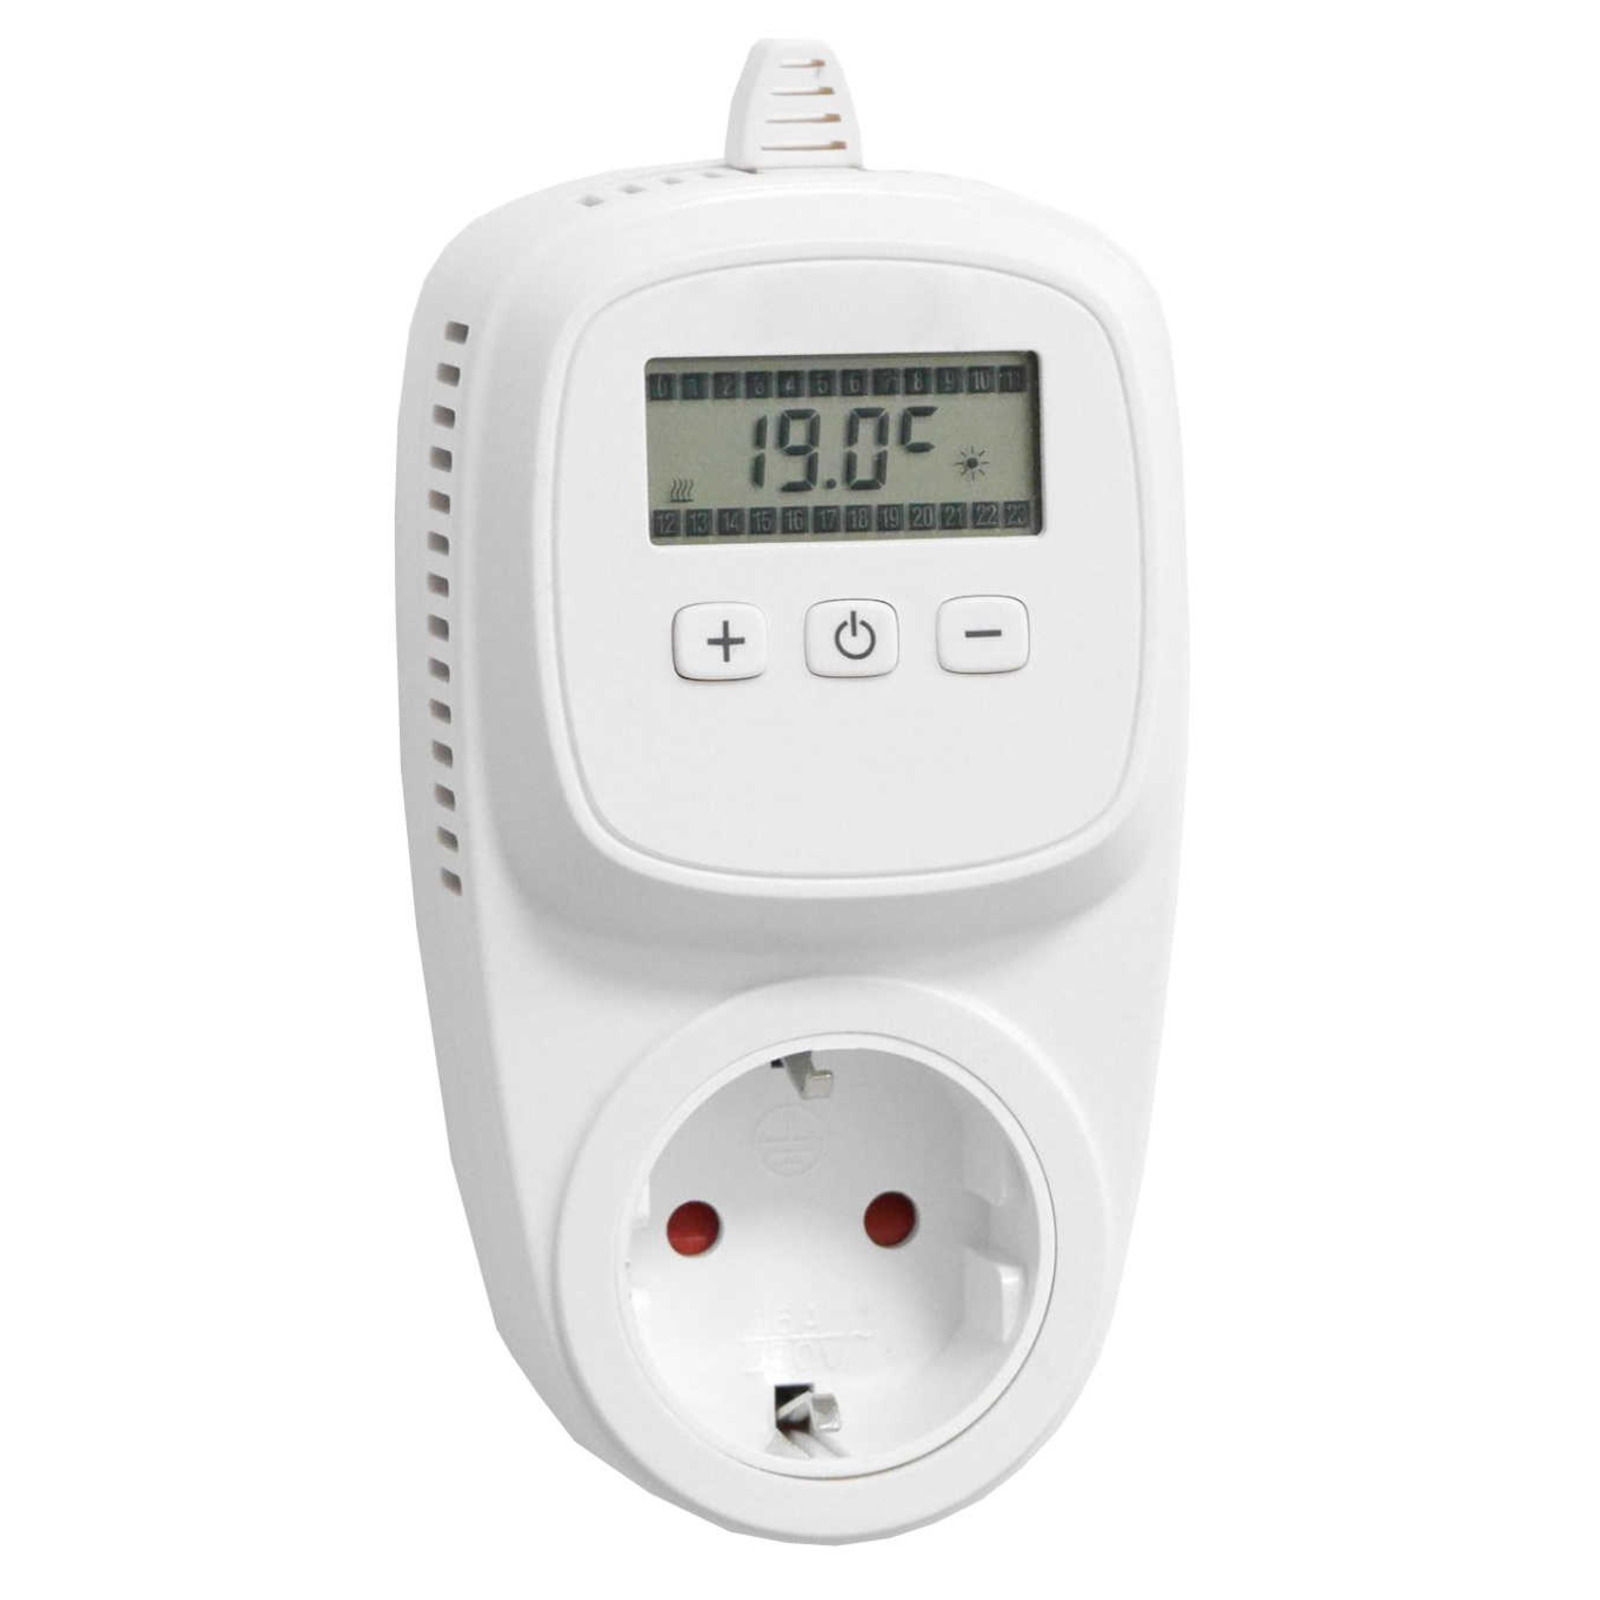 universalthermostat zwischenstecker steckdosen thermostat heizen k hlen sensor eur 39 99. Black Bedroom Furniture Sets. Home Design Ideas